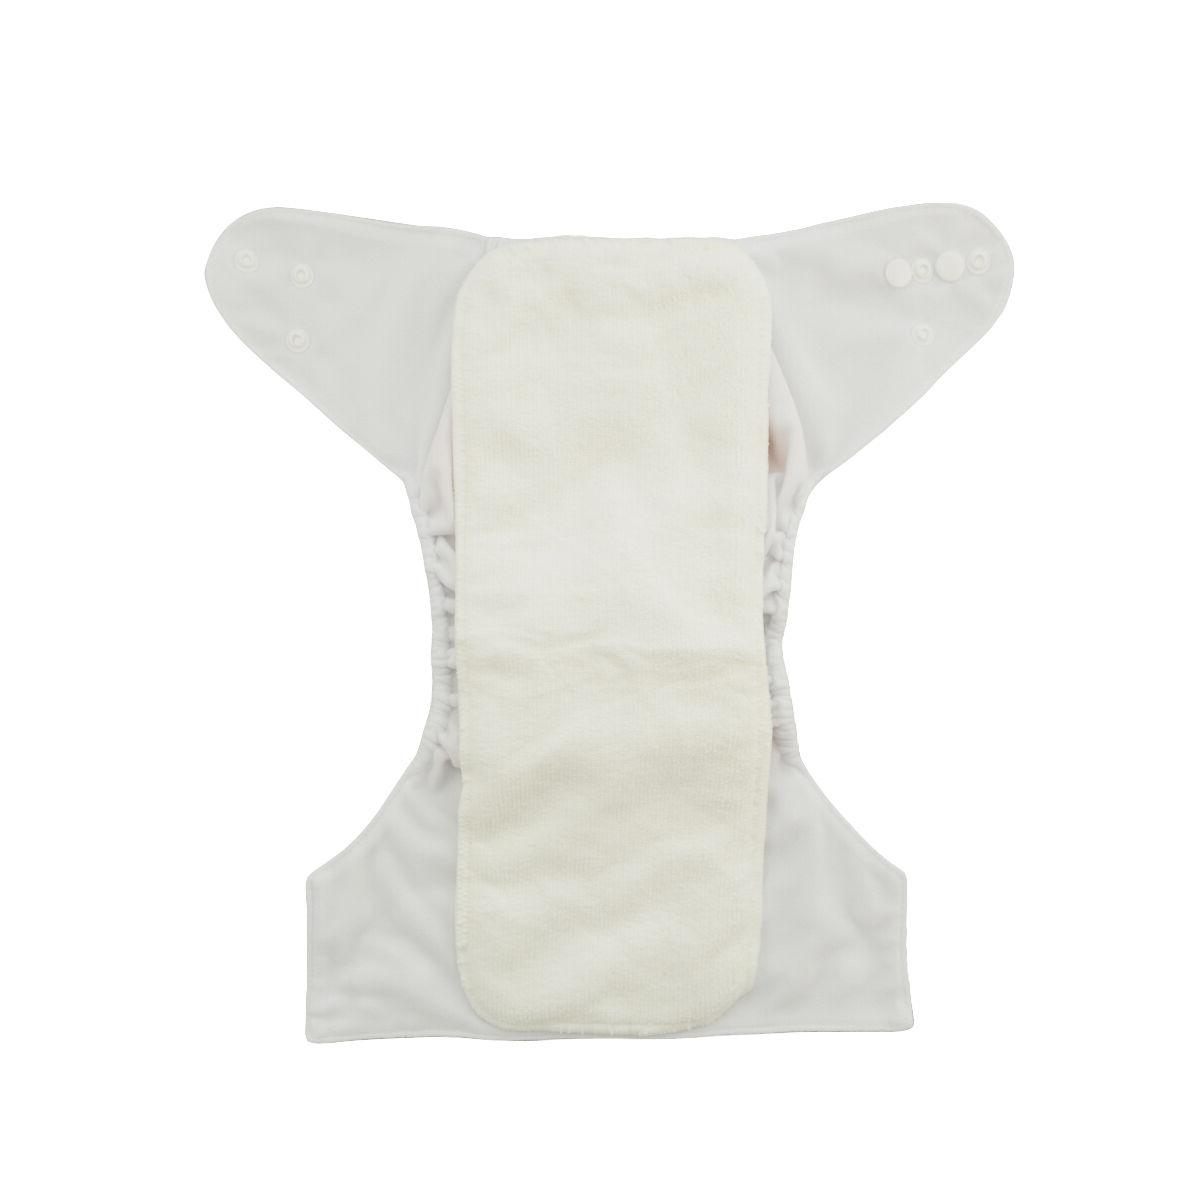 ALVABABY One Size Reusable Pocket +1